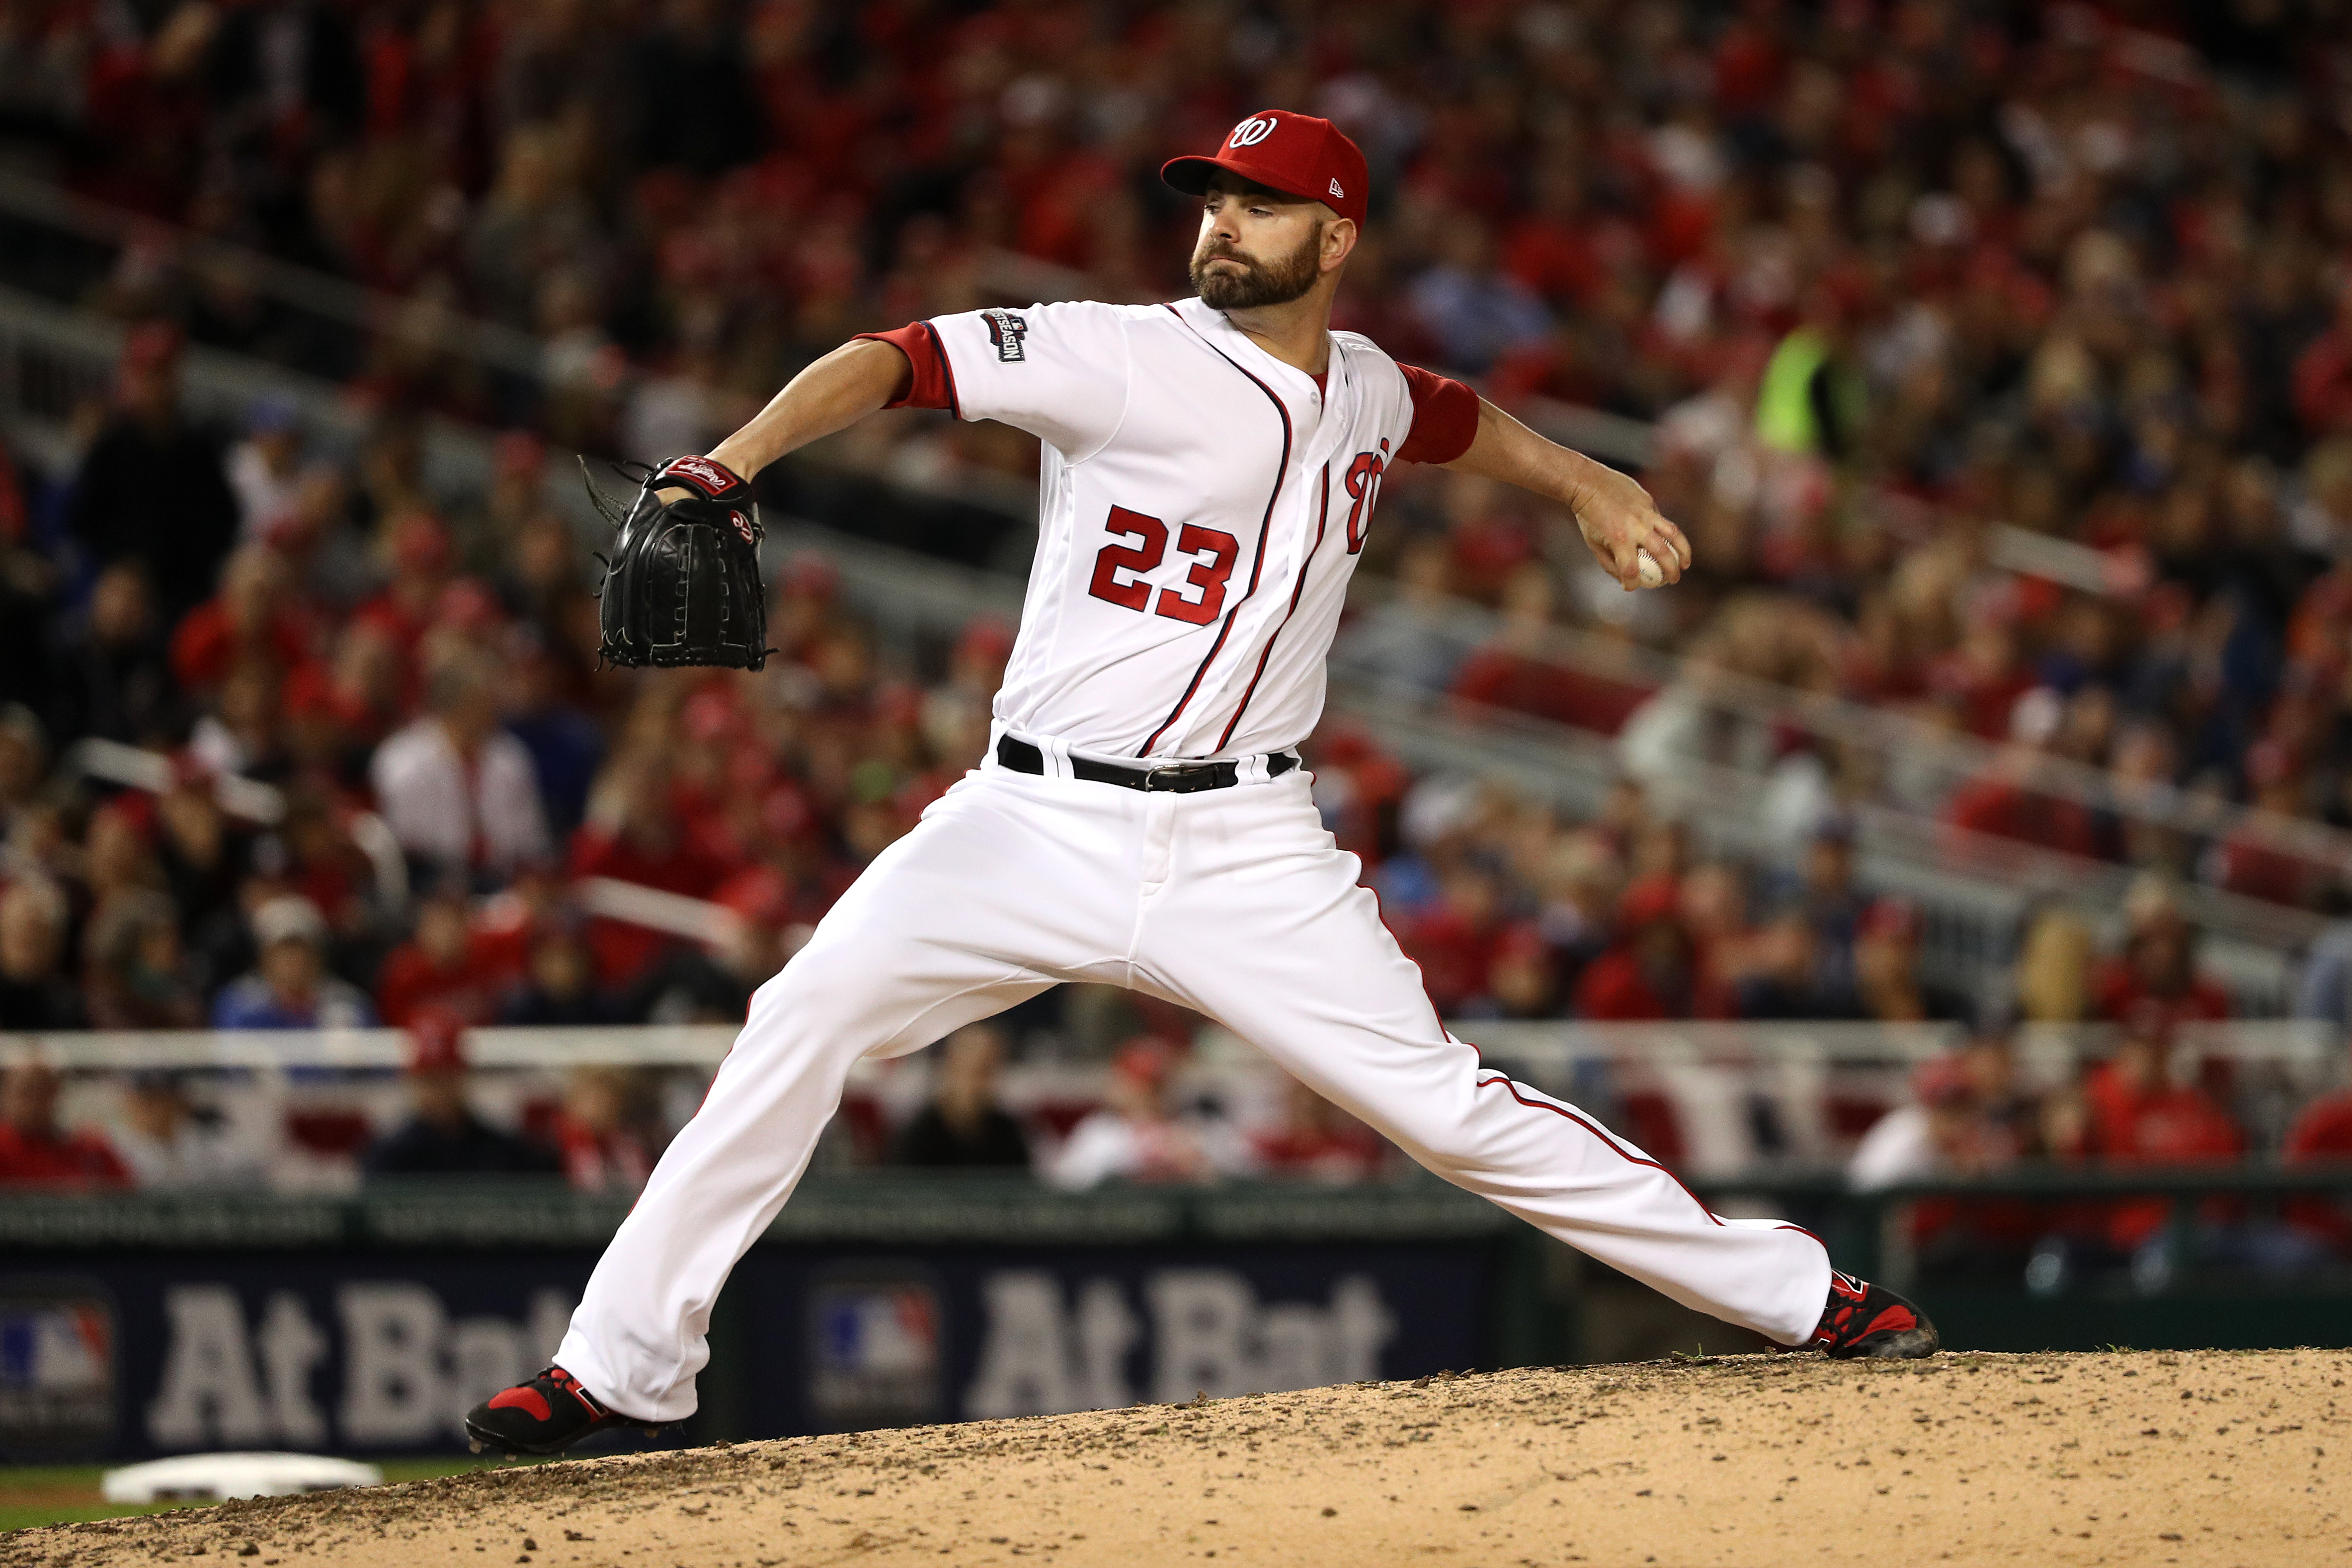 This is a human pitcher